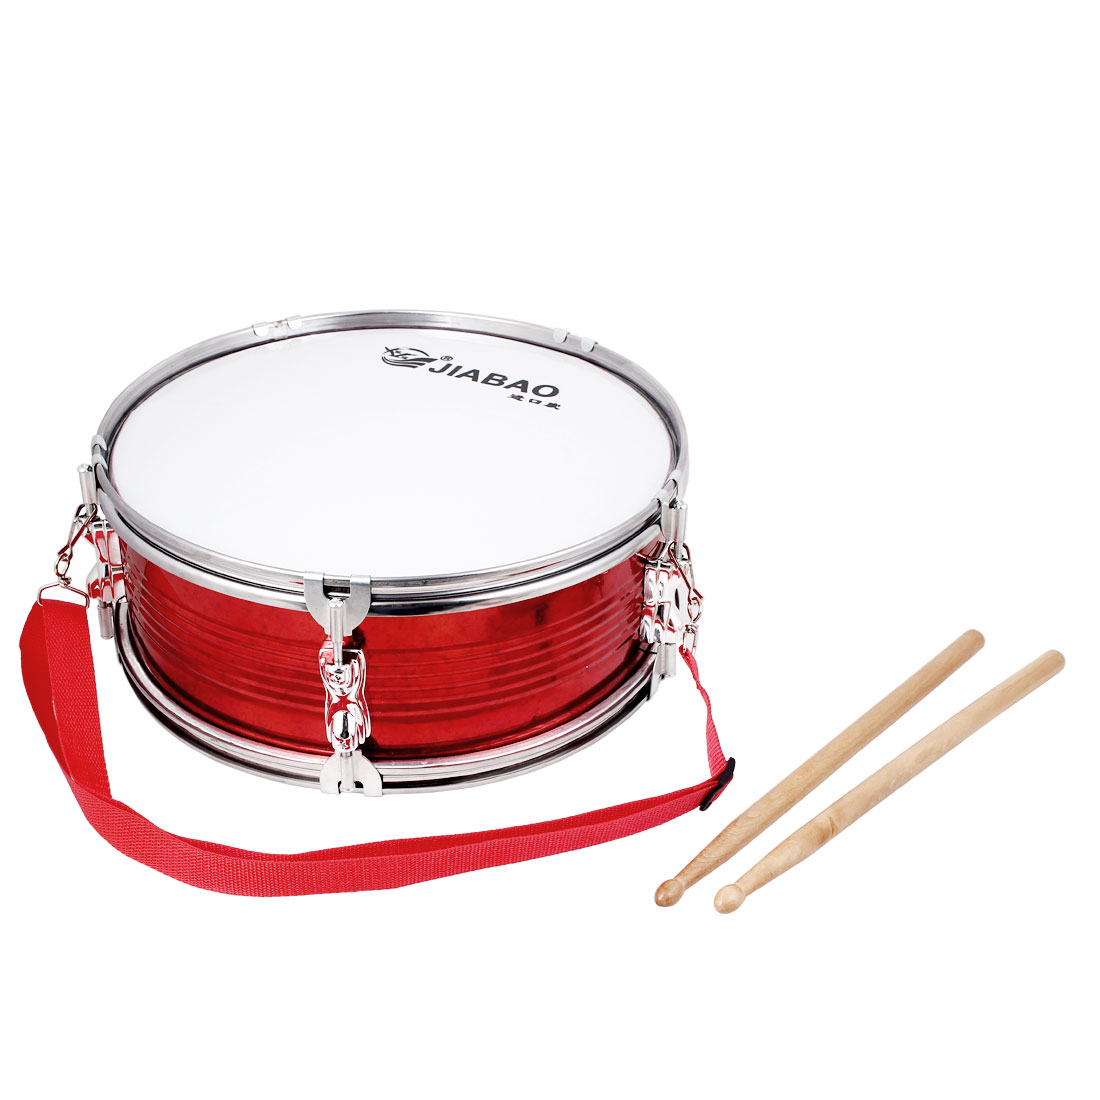 Dance Gathering Festival Tin 13 Inch Drum Set Red Silver Tone w Sticks